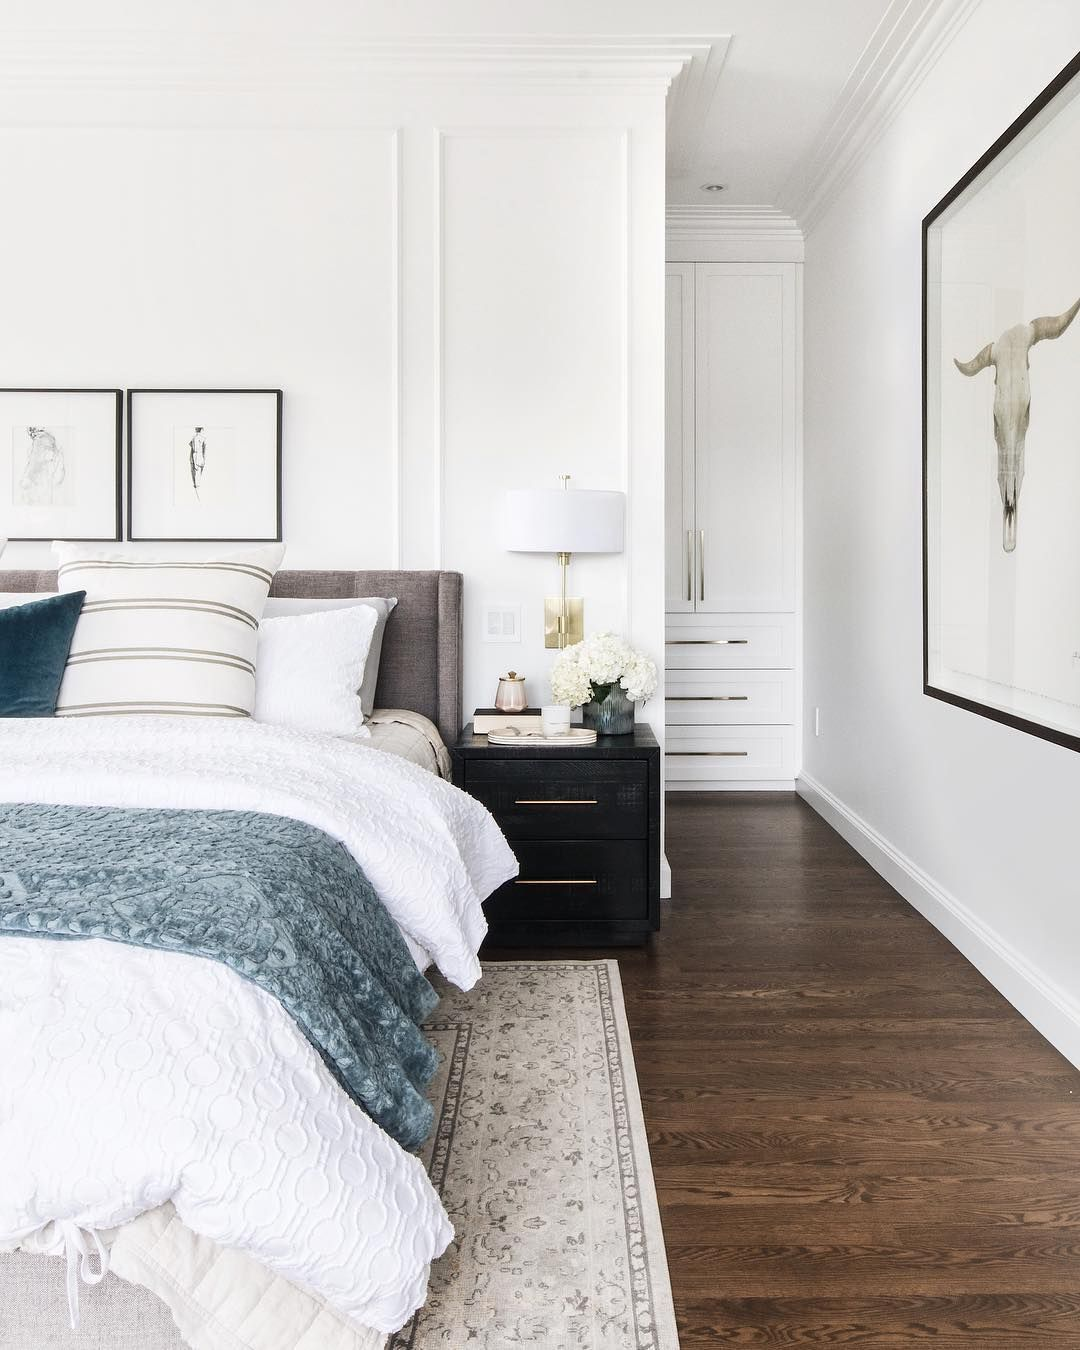 Leclair Decor On Instagram When We First Showed You Guys This Room Many Of You In 2020 Modern Master Bedroom Design Master Bedroom Inspiration Modern Master Bedroom